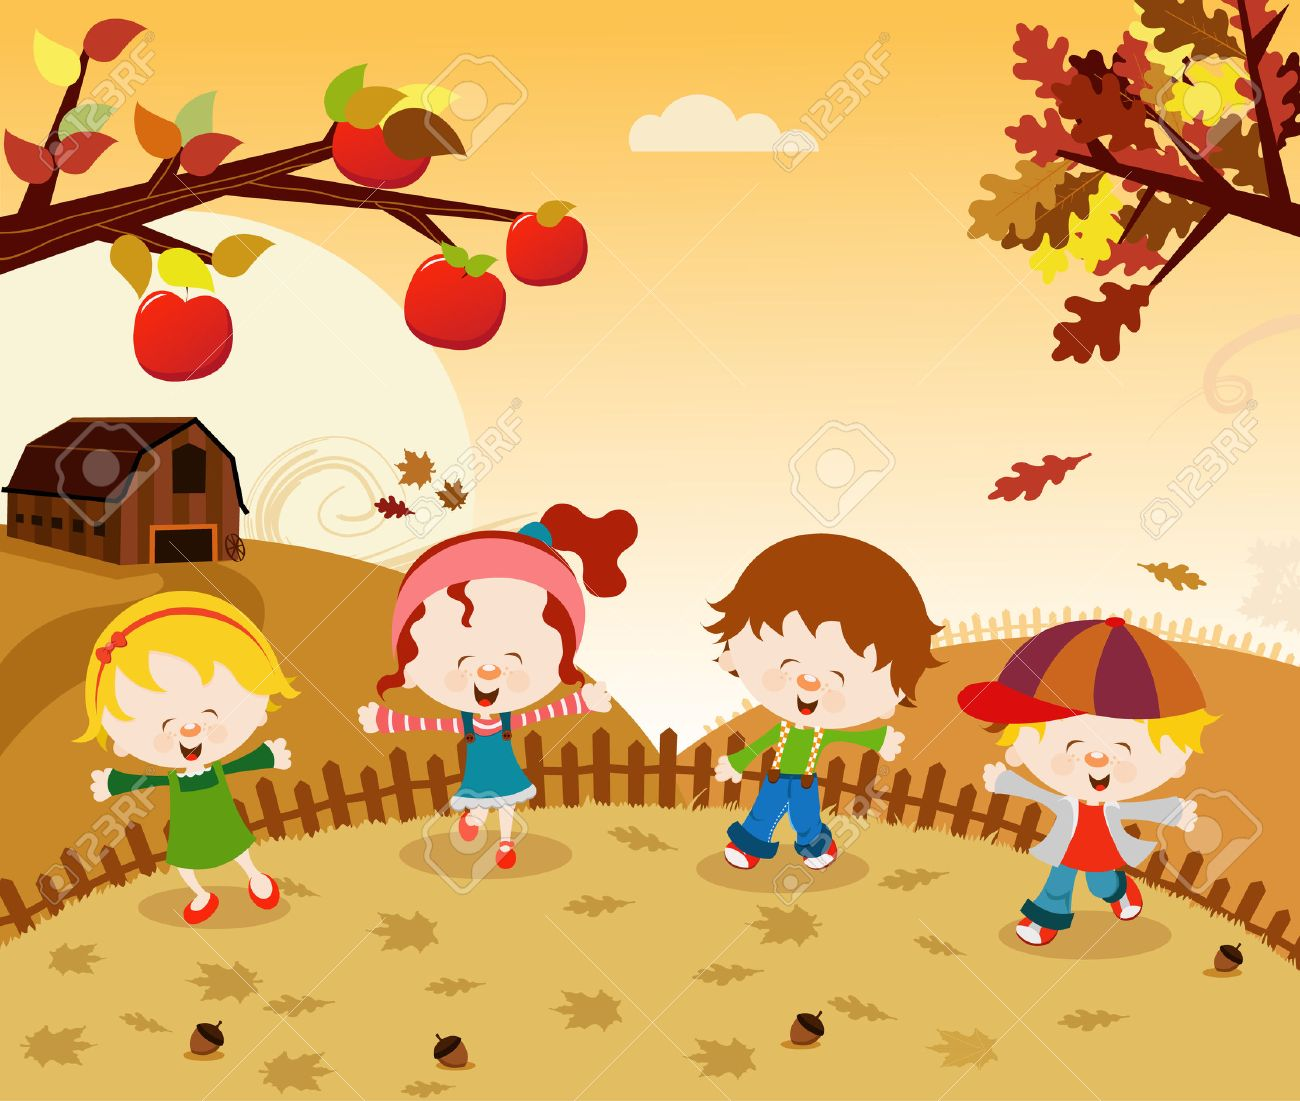 Image result for cartoon autumn